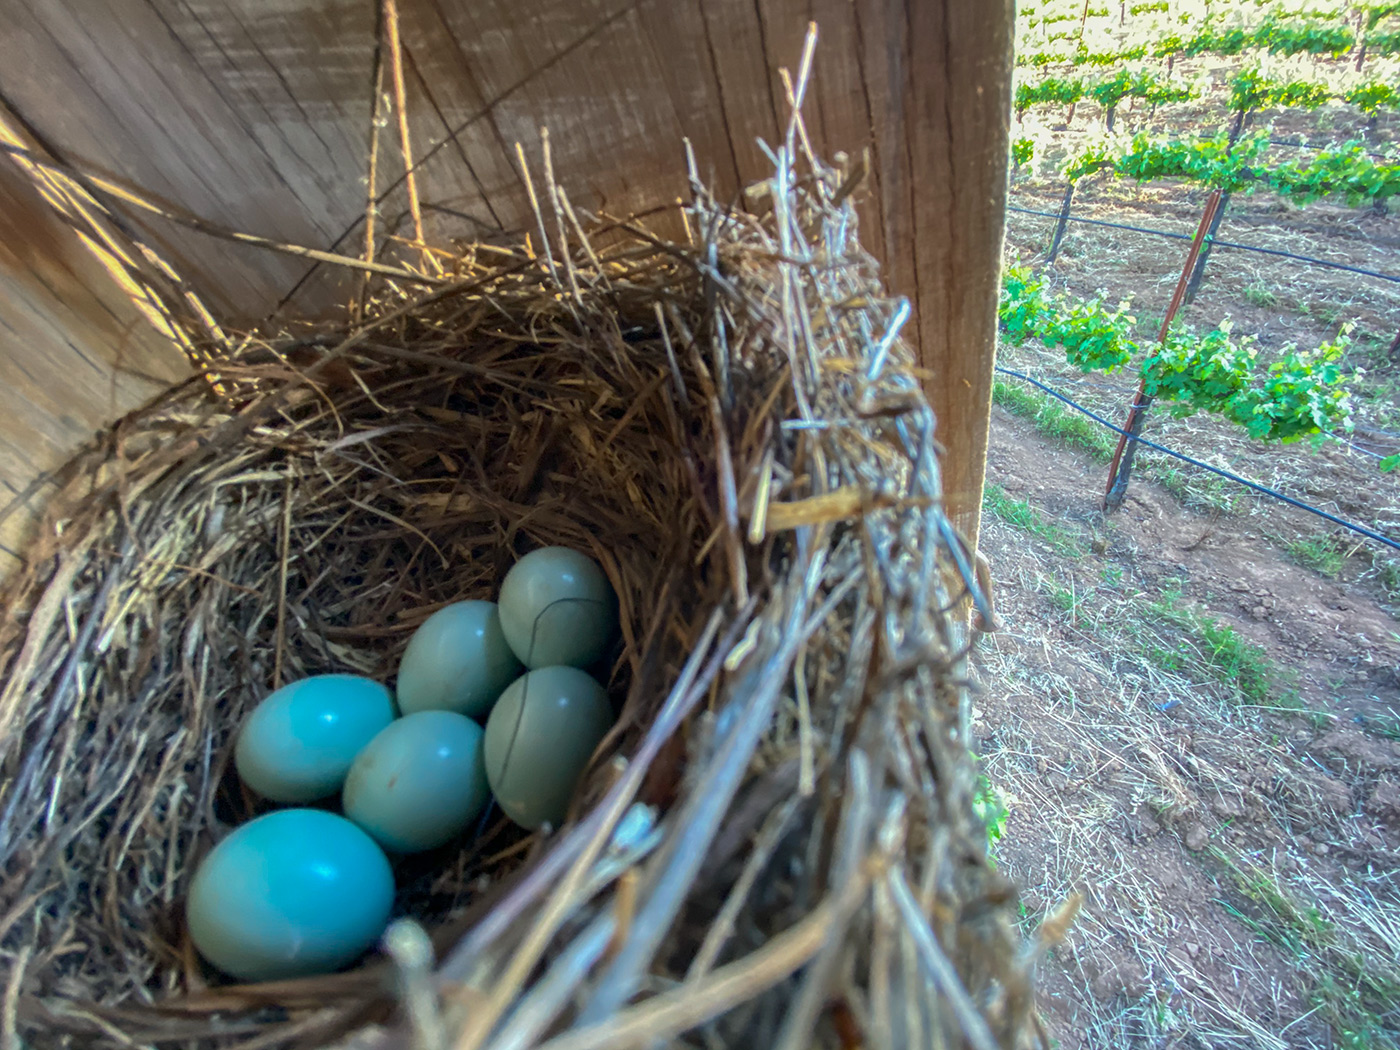 A clutch of Bluebird eggs